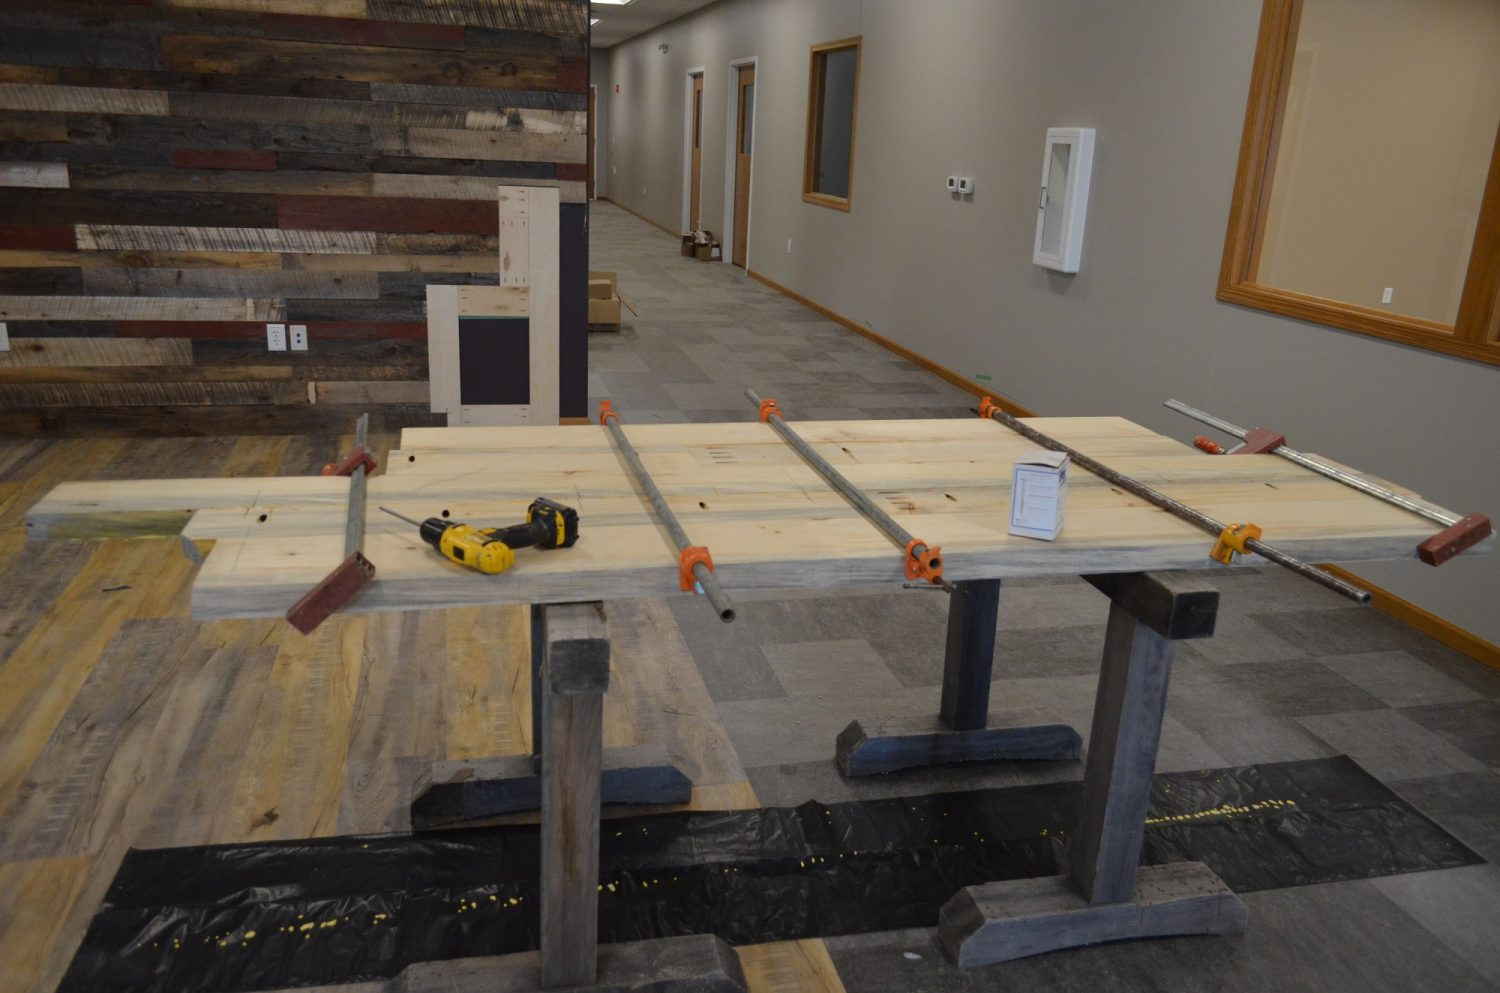 A customer service desk in the works for the new Merrill Community Enrichment Center, made of barn wood.